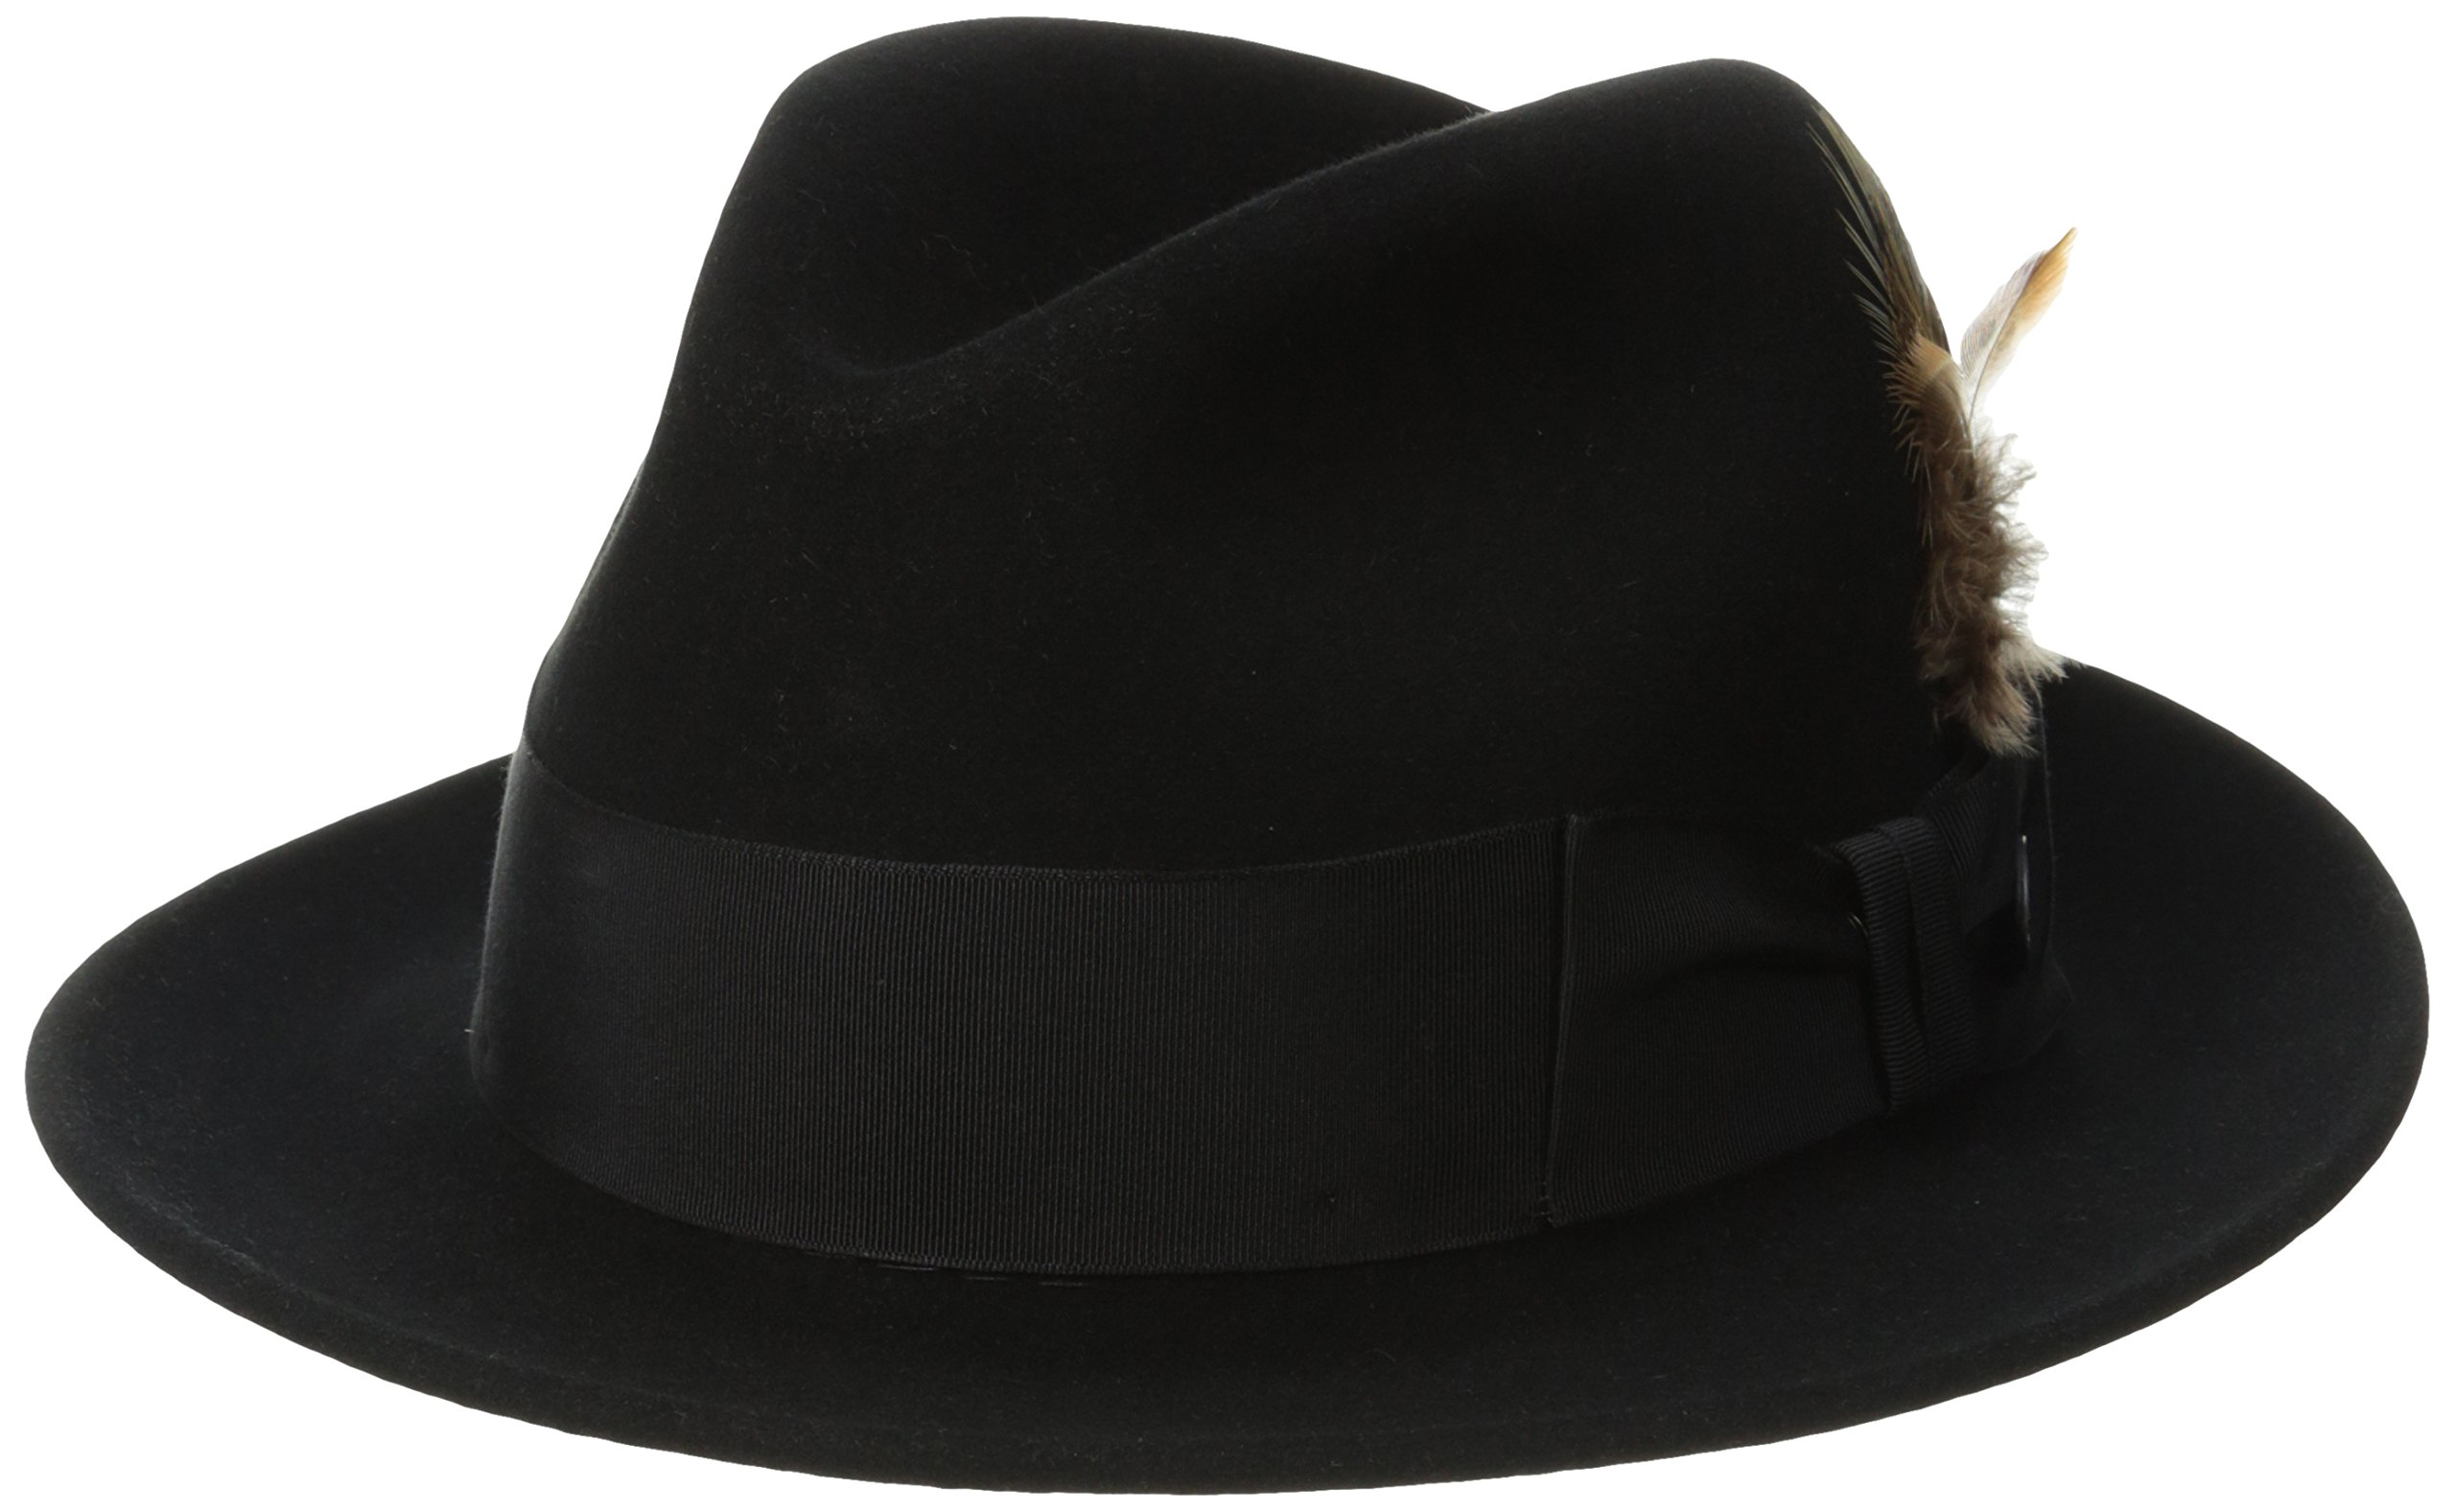 Stetson Men's Saxon Royal Quality Fur Felt Hat, Black, 7.375